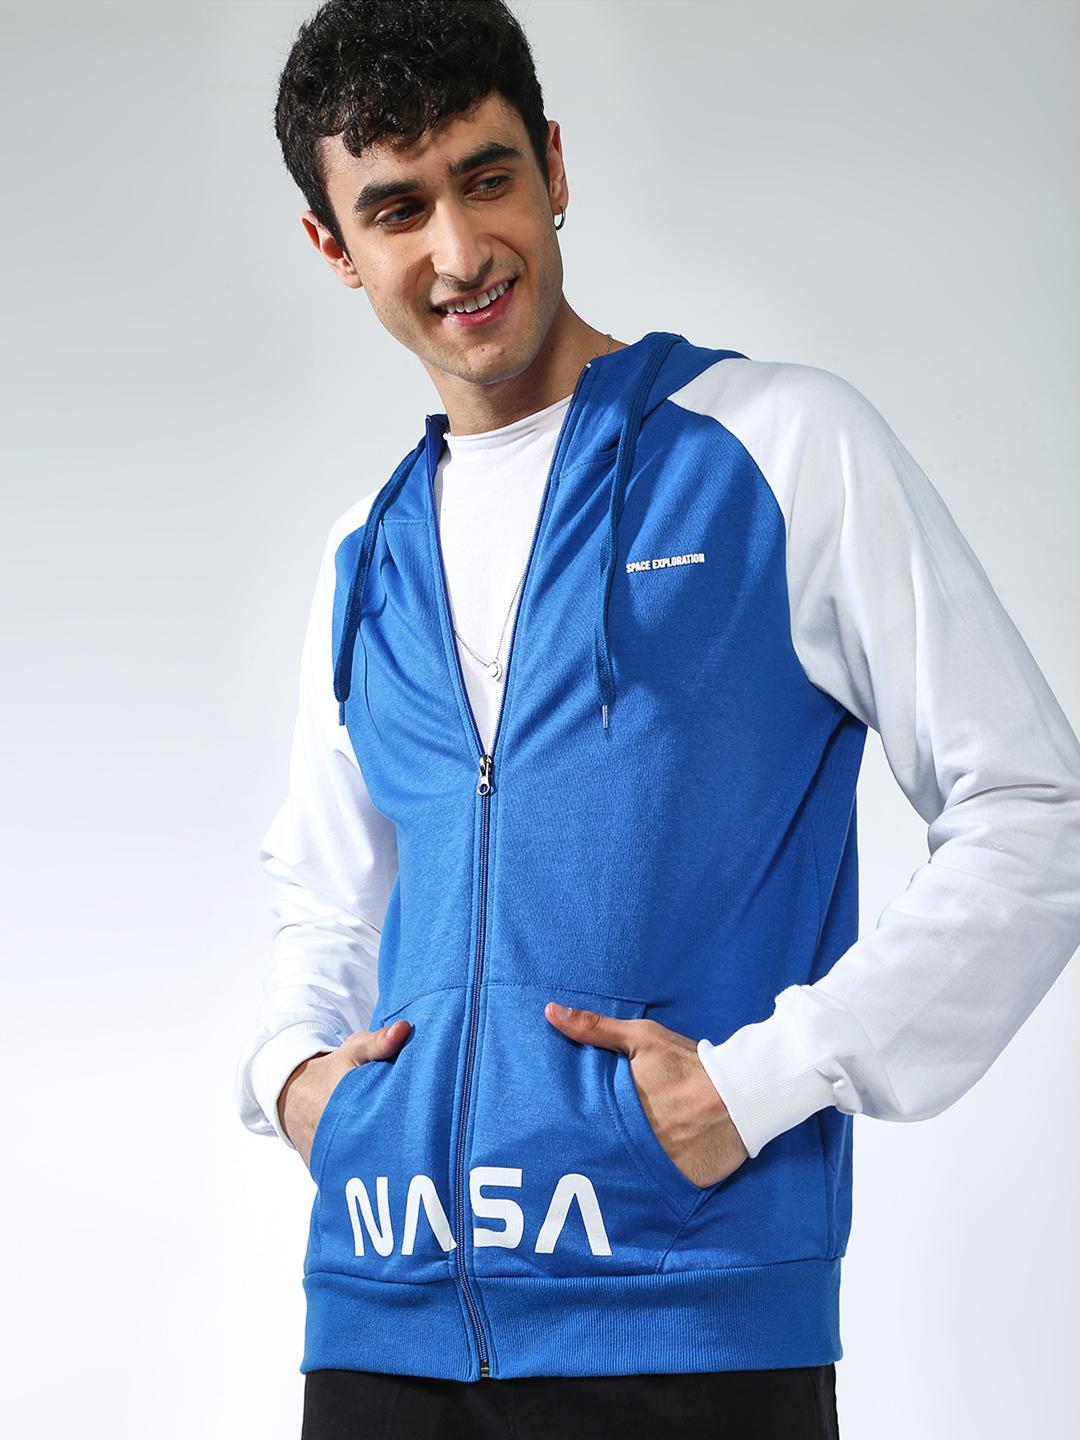 MASH UNLIMITED ROYAL/WHITE Nasa Text Print Color Block Hoodie 1